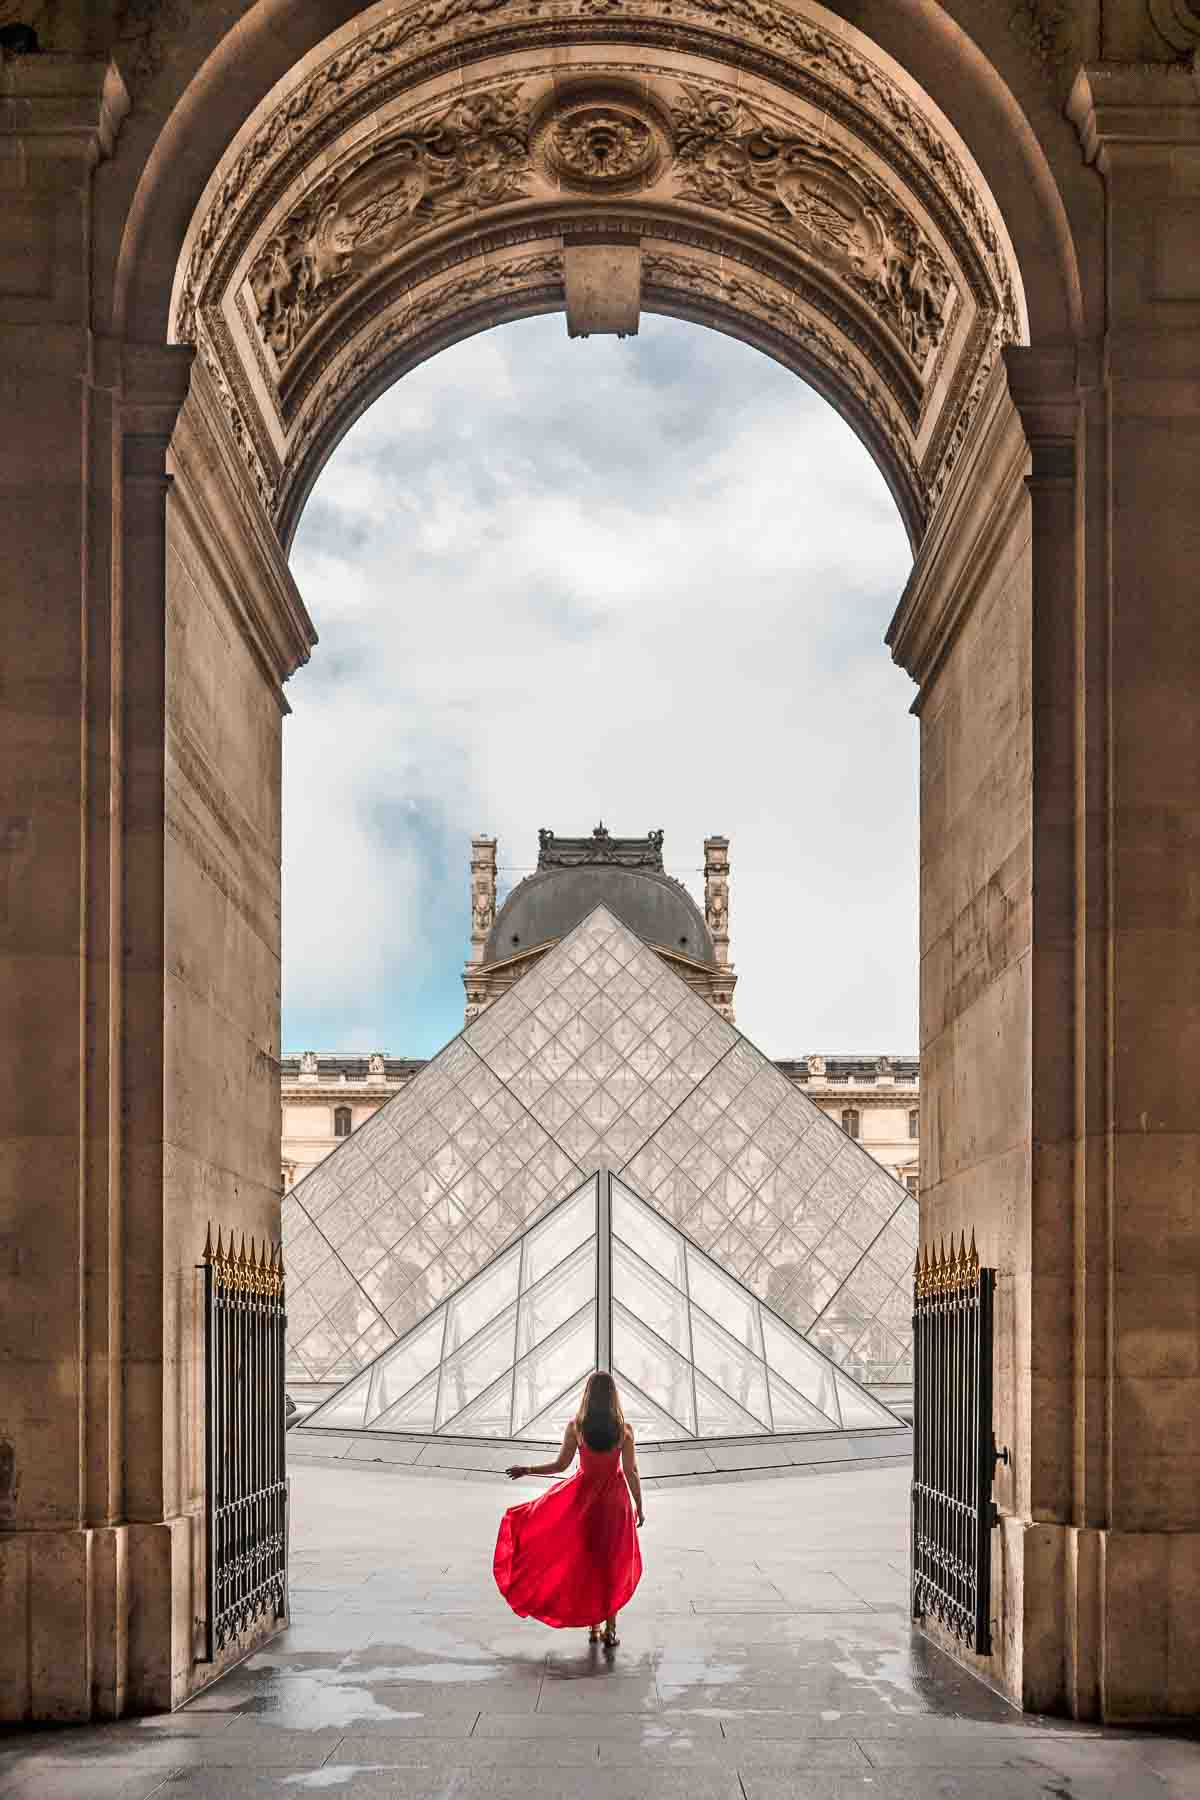 Girl in a red dress standing in front on the Louvre, one of the most instagrammable places in Paris